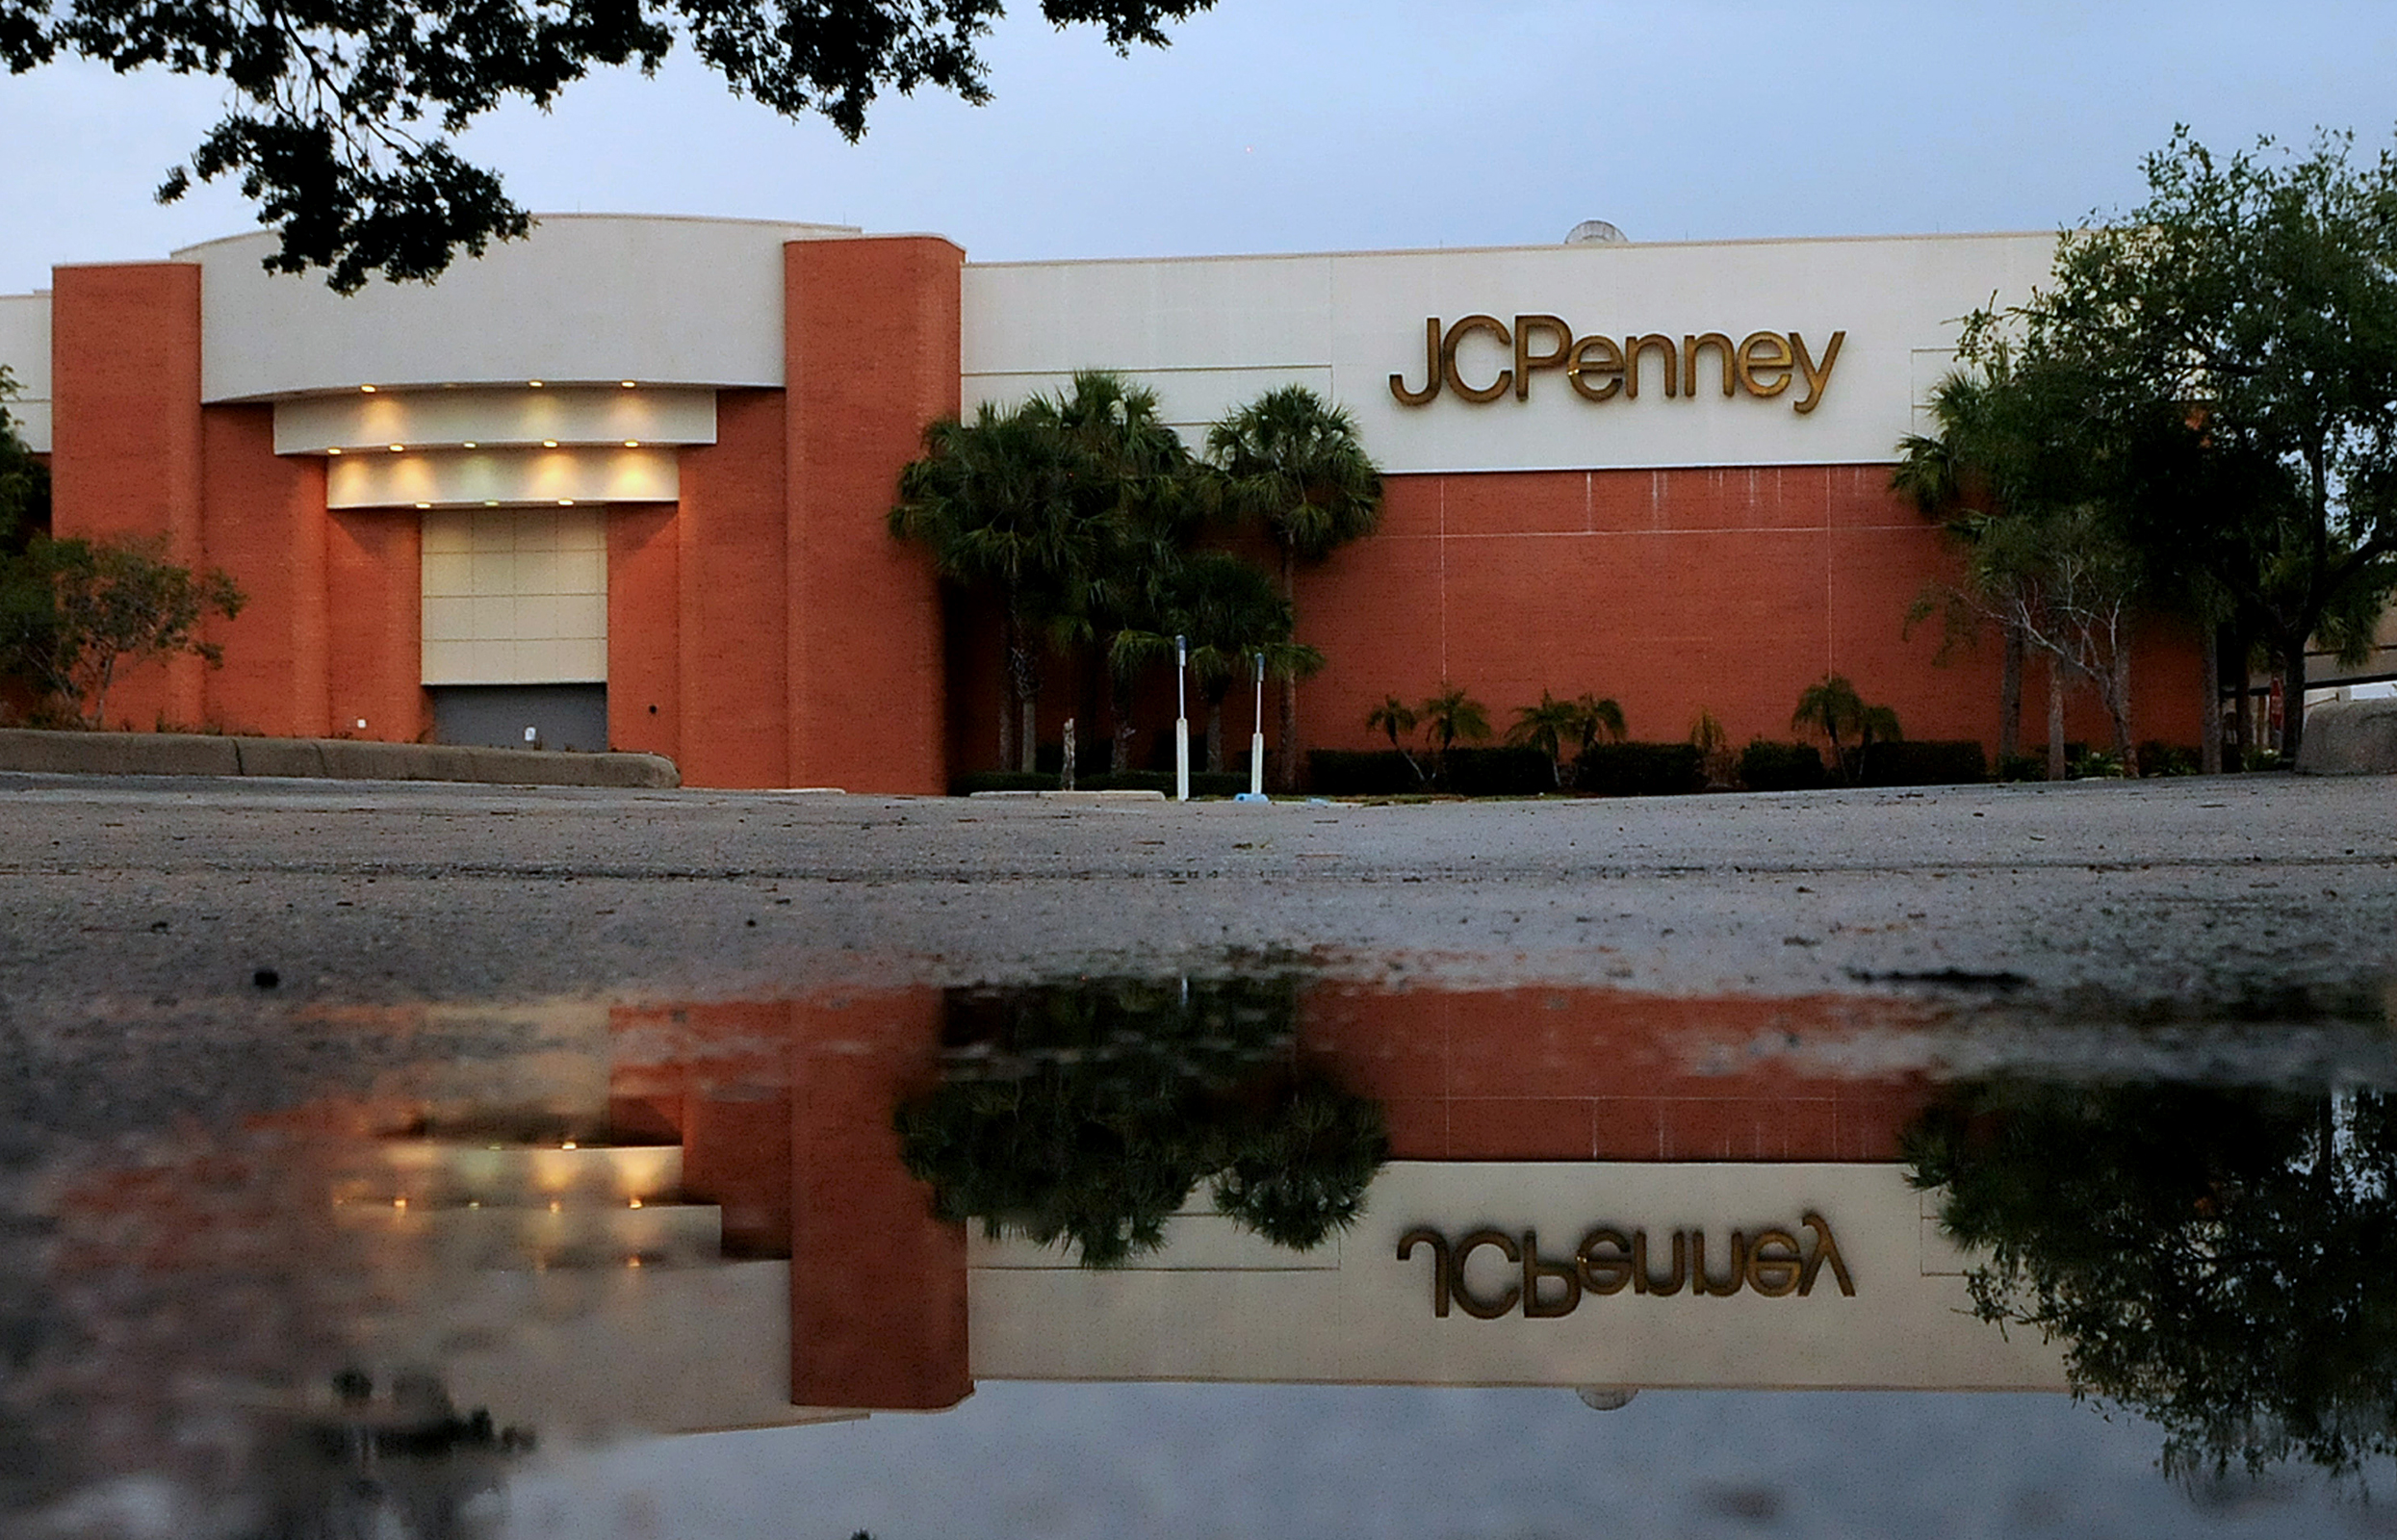 JCPenney is closing 154 stores this summer